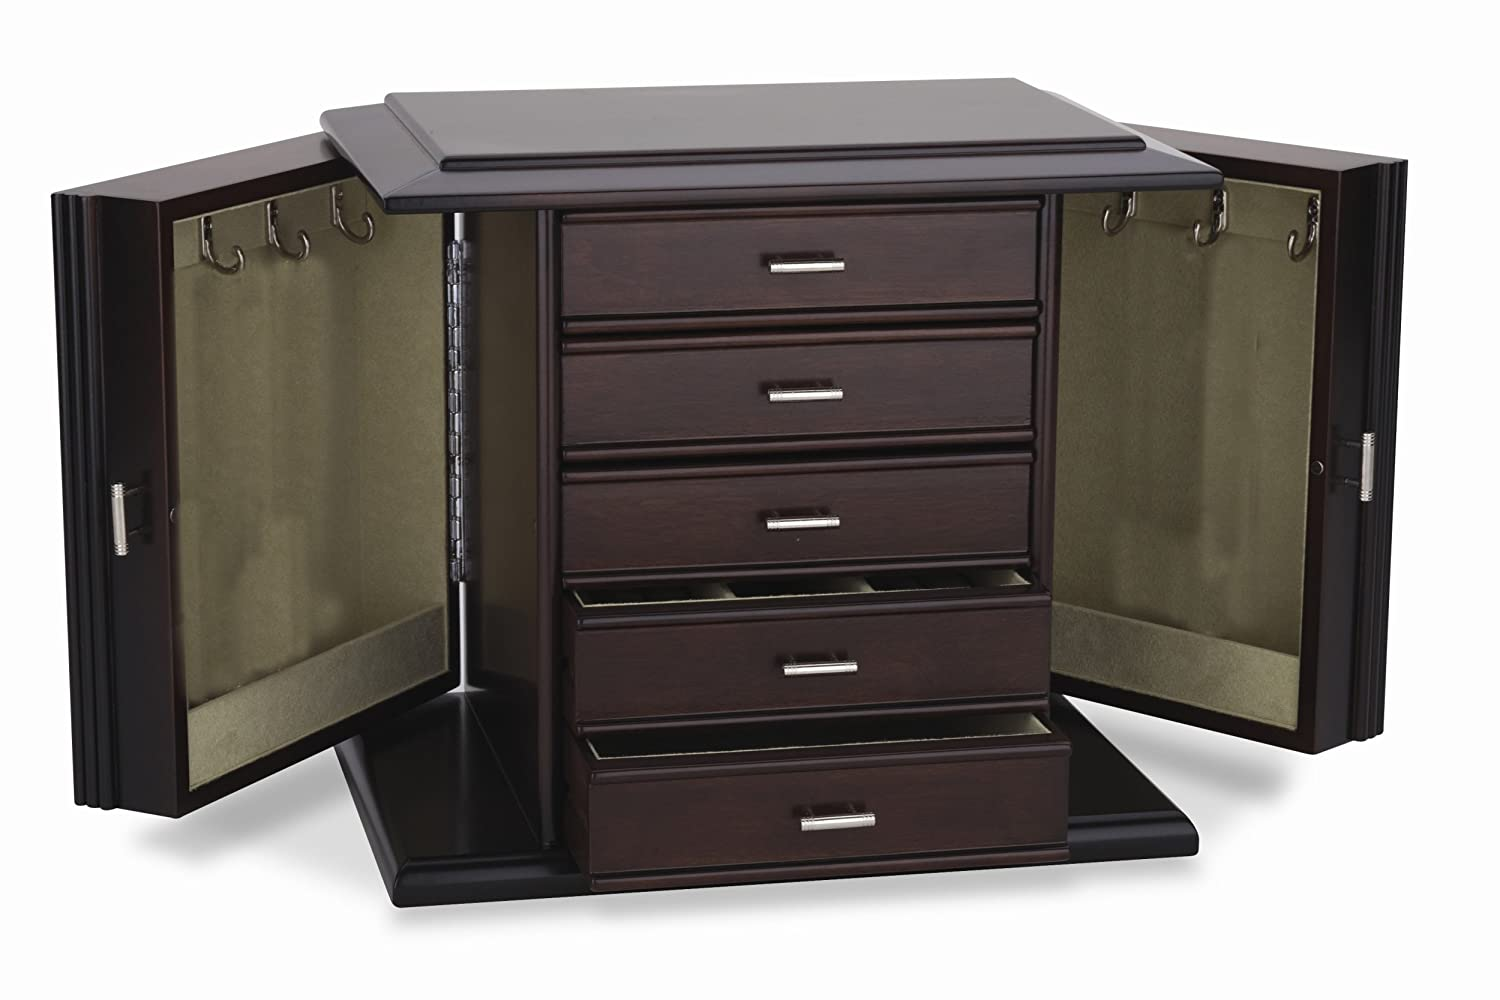 Amazoncom Reed Barton Diva Jewelry Chest Home Kitchen